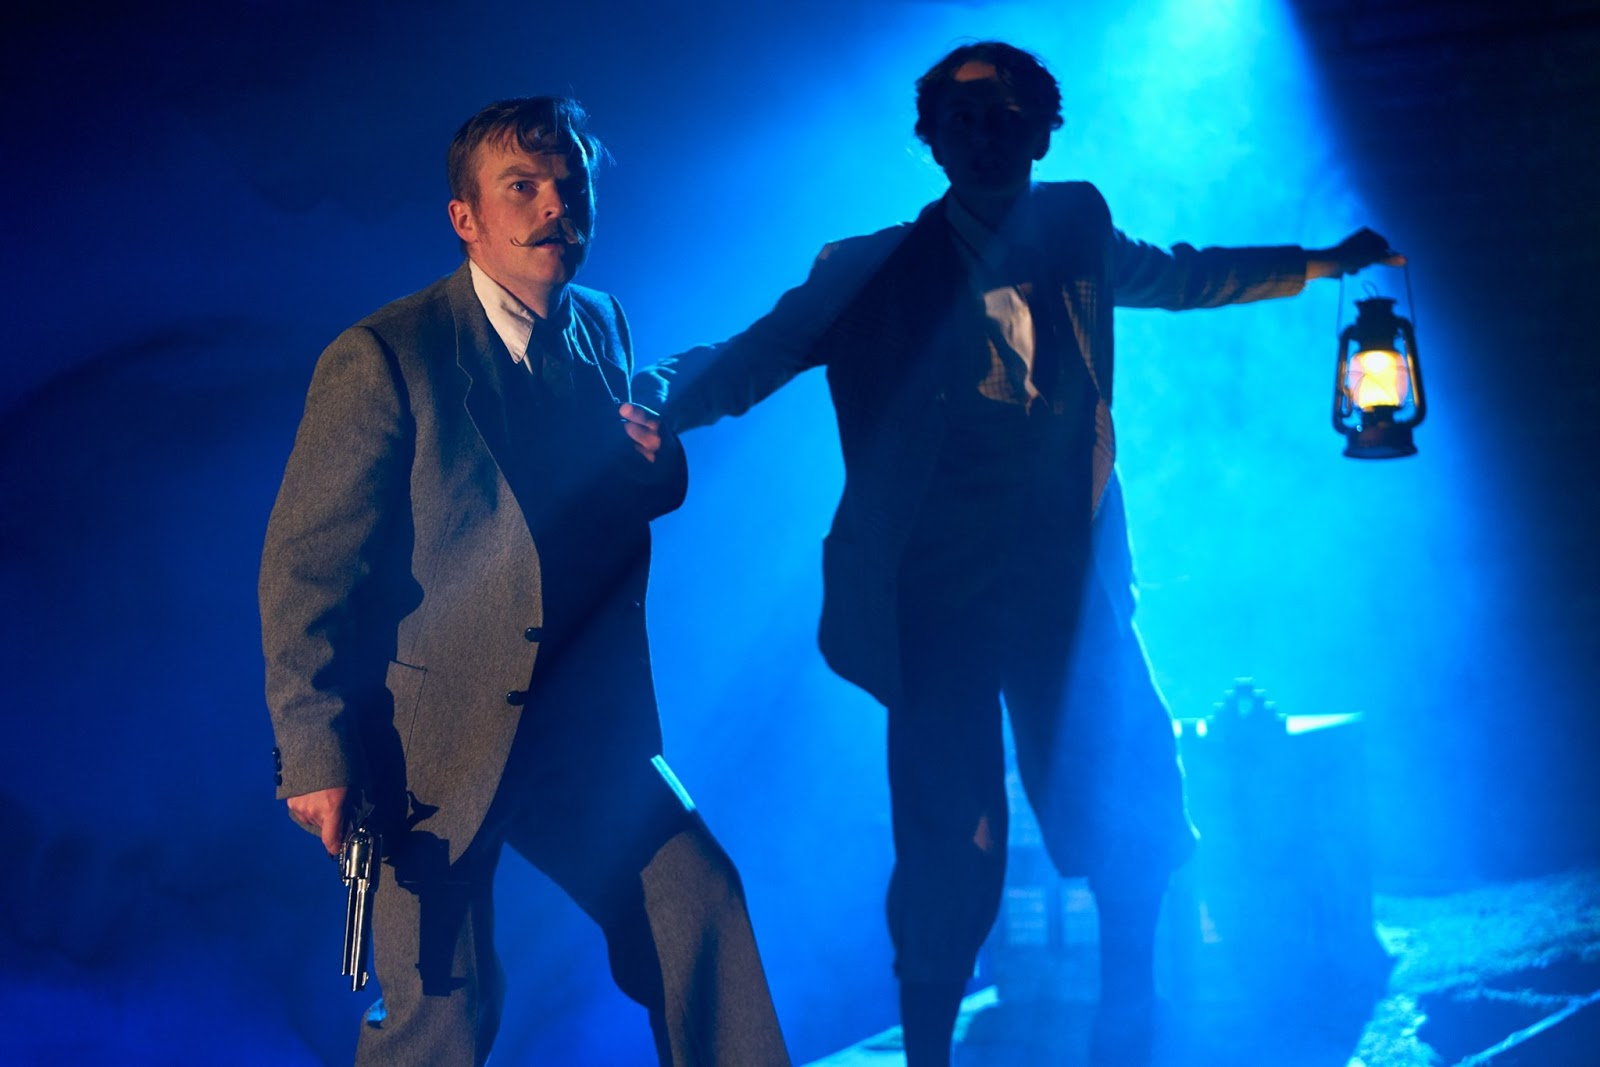 Theatre with Teens : The Hound of the Baskervilles Parent's Review